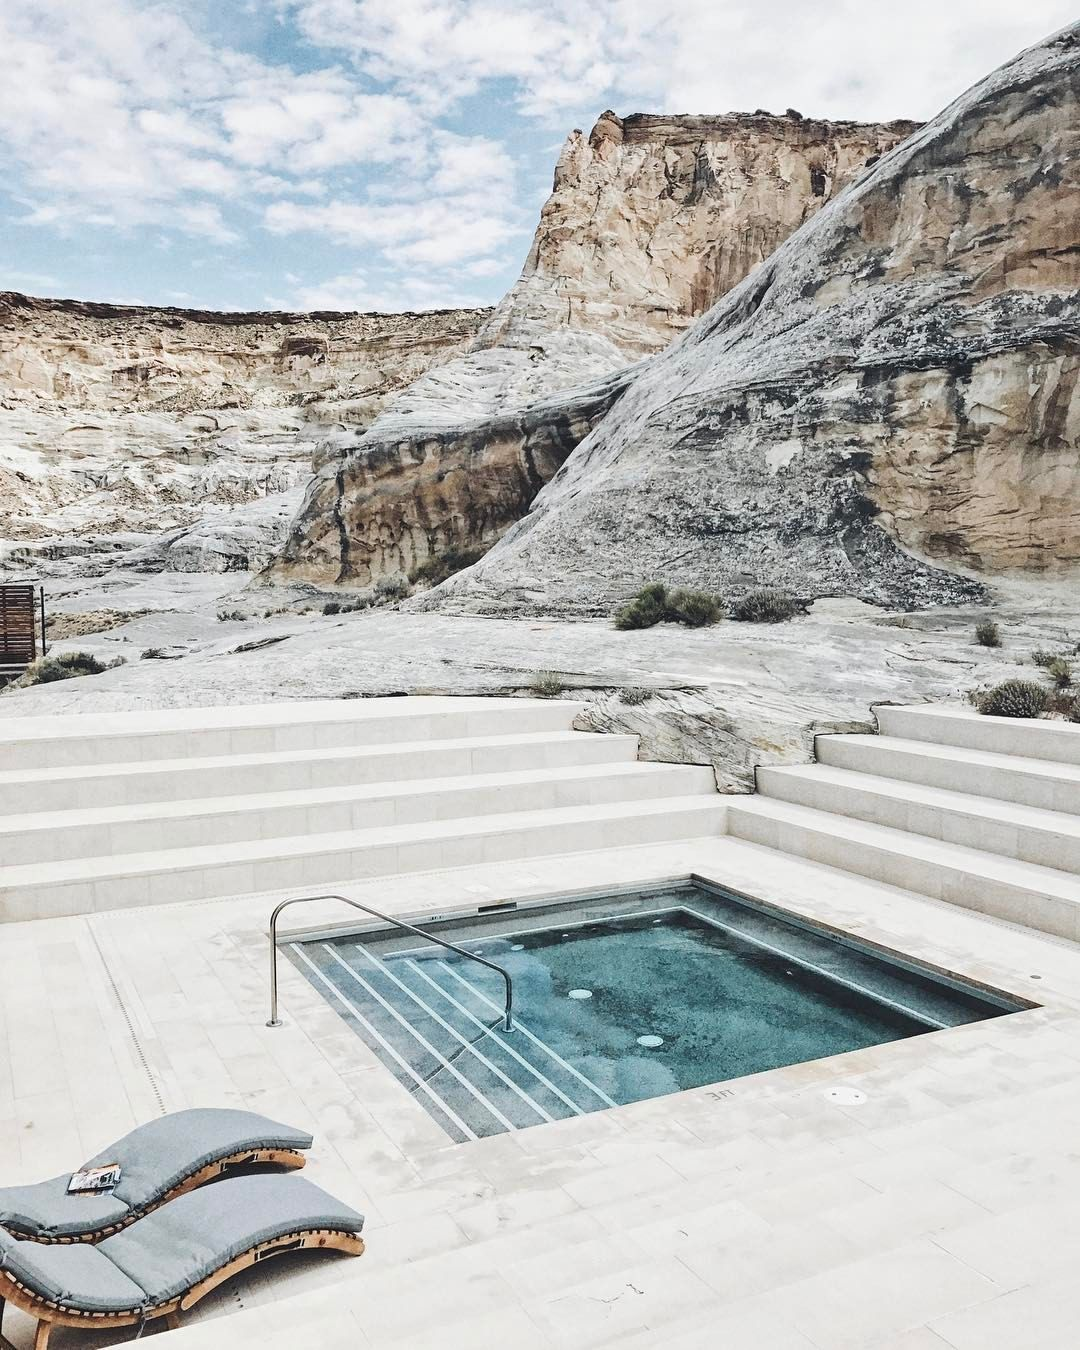 Aussenpool Rechtschreibung Pin By Becky Morgeson On Travel In 2019 Pinterest Viagem